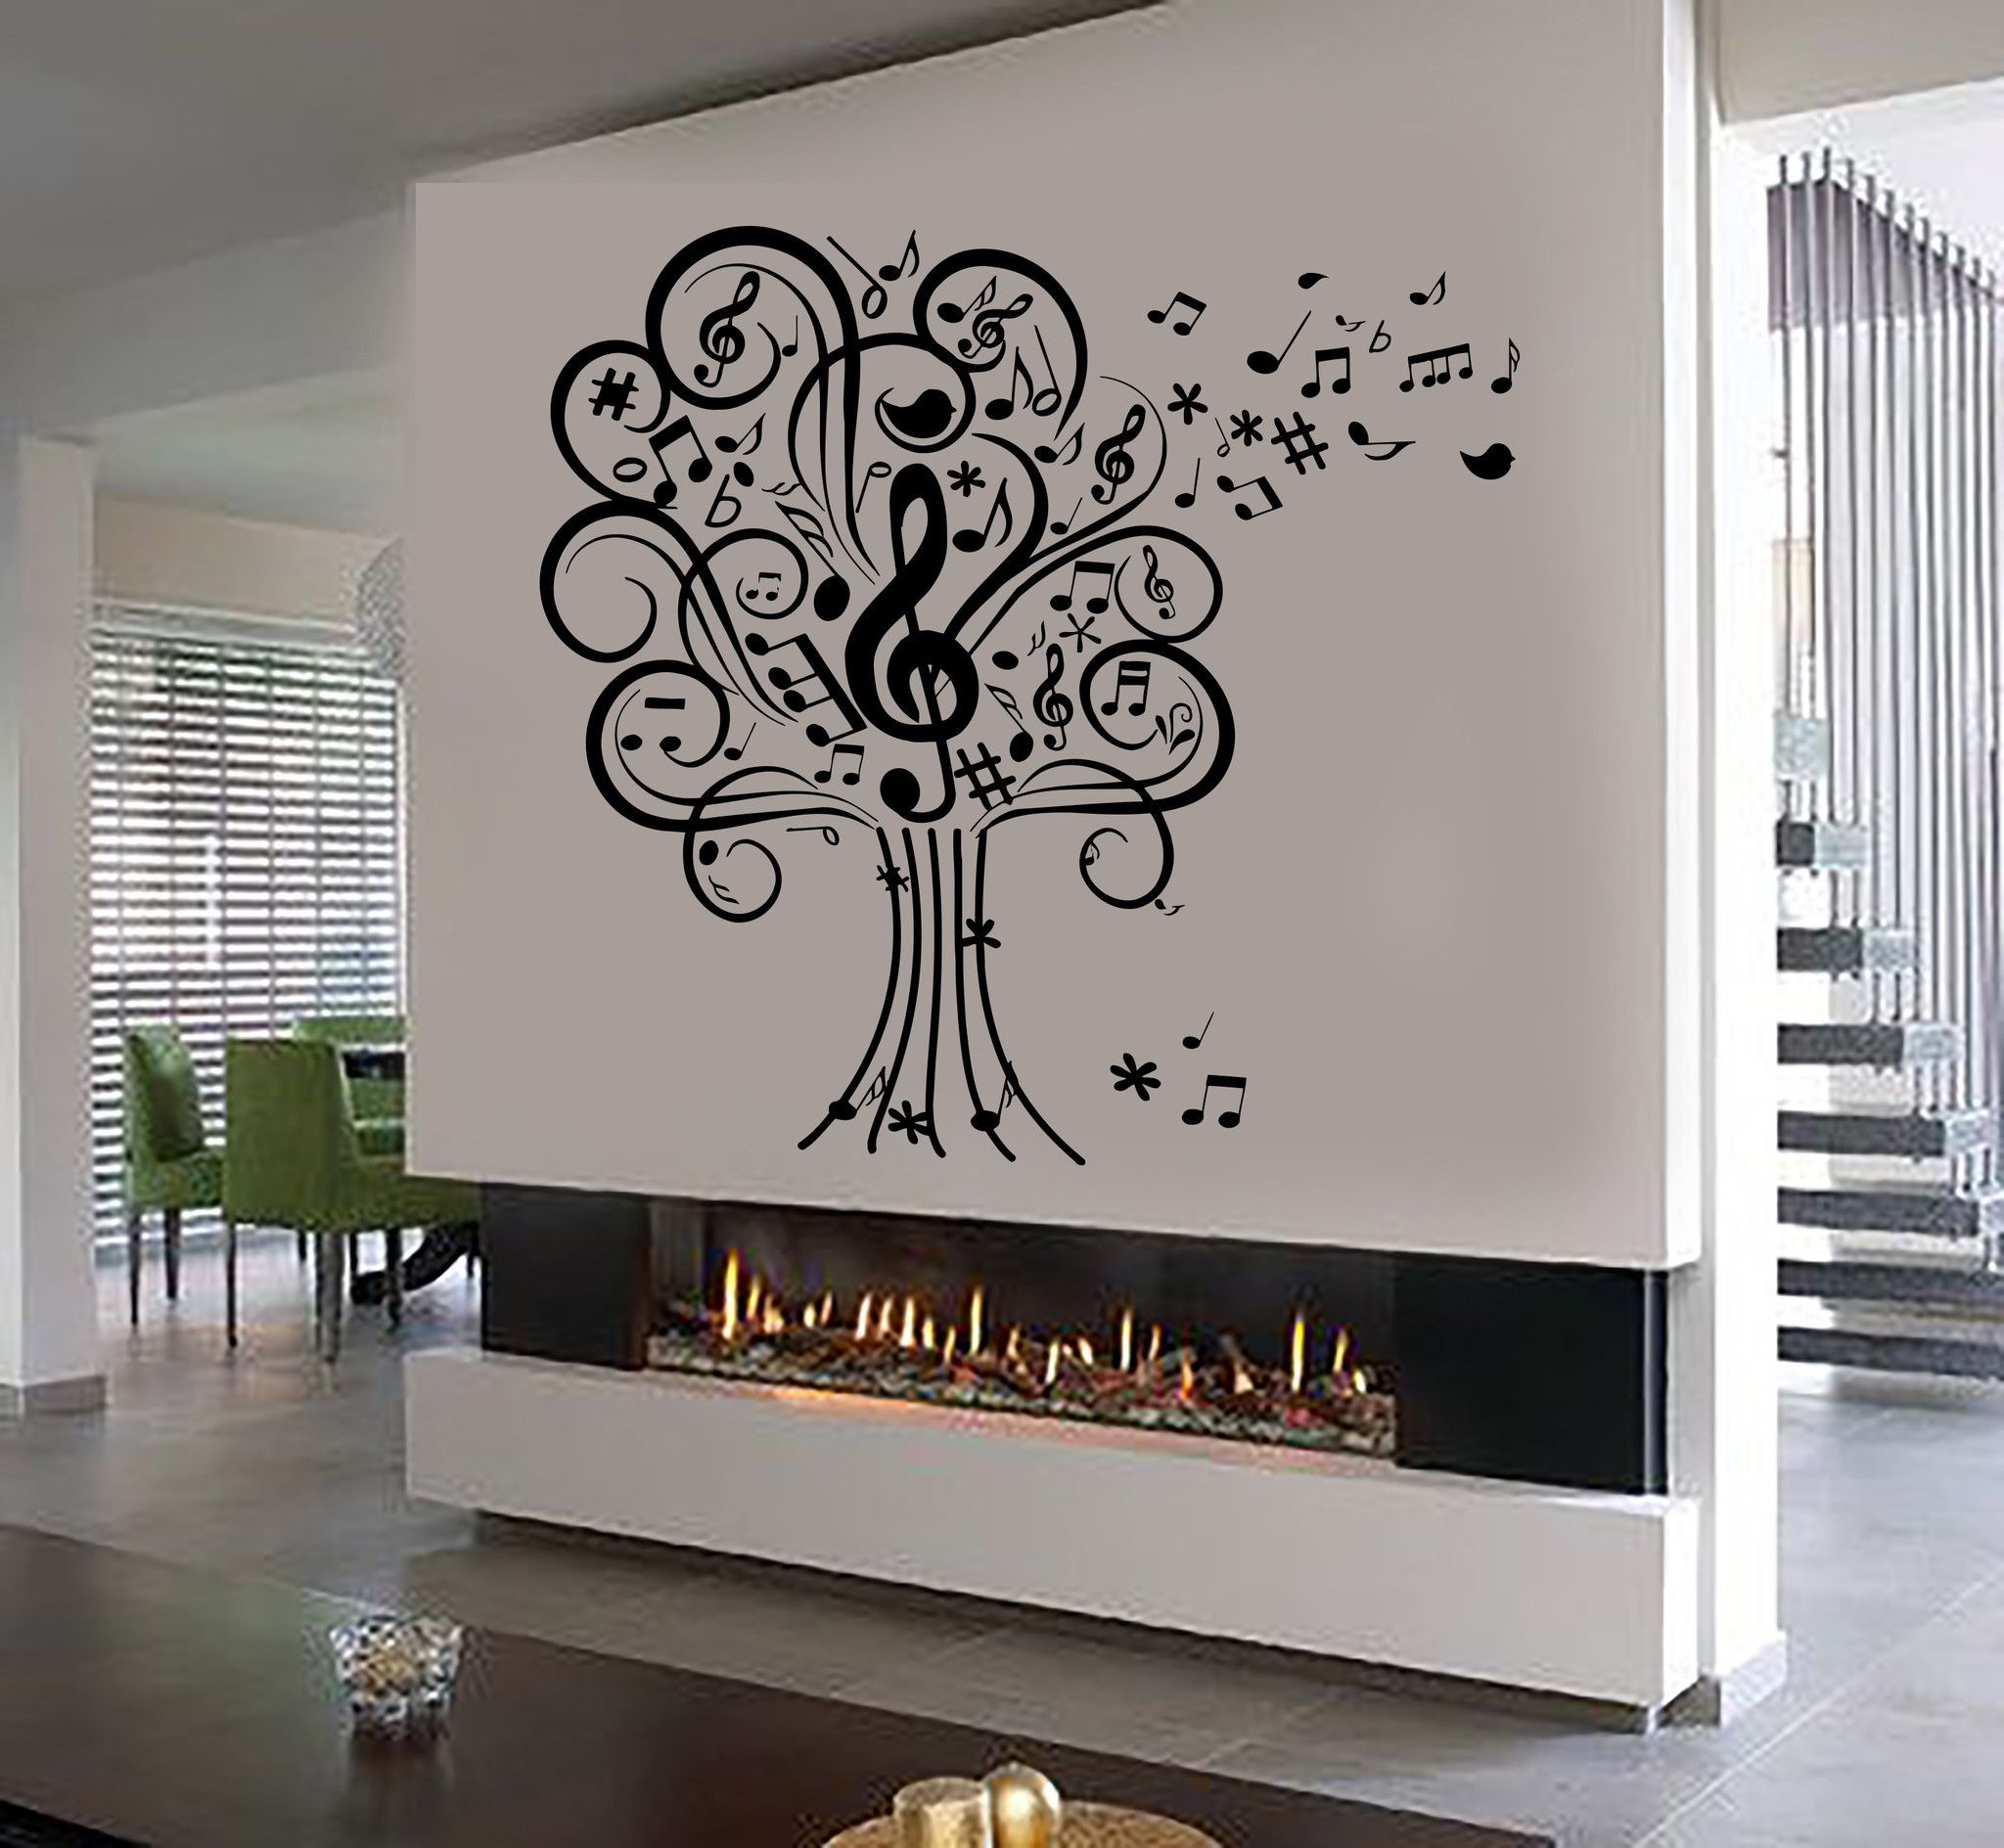 Vinyl Wall Decal Vinyl Wall Decal Musical Tree Music Art House Interior